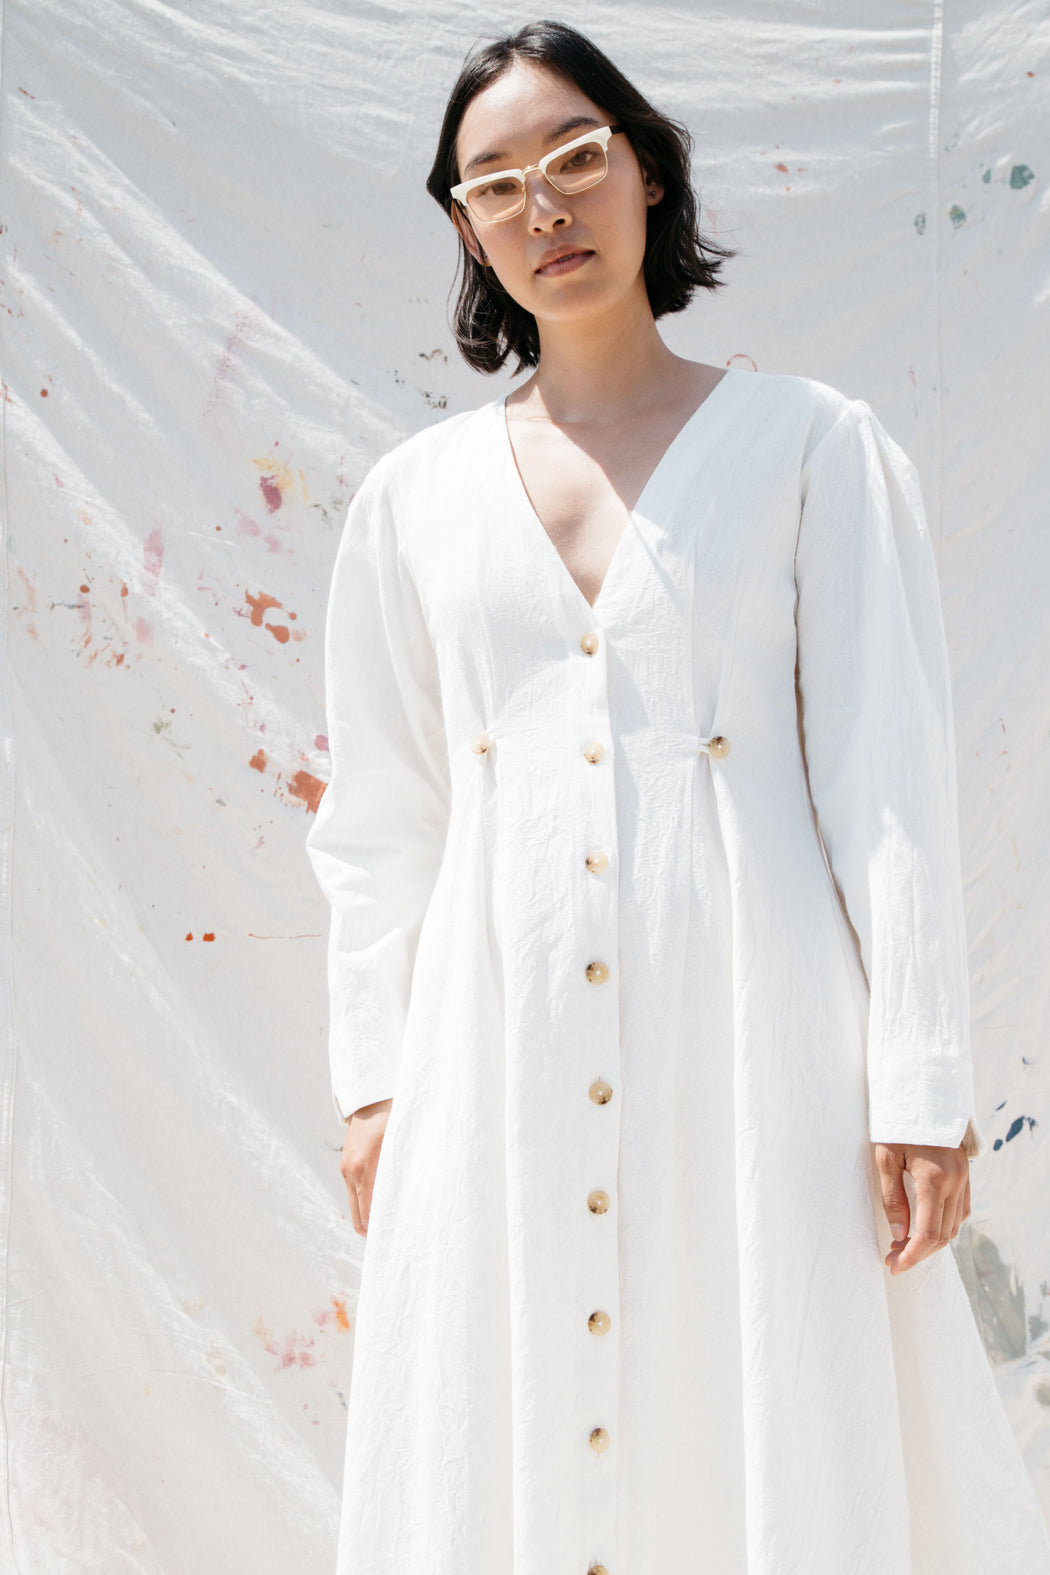 RICHTER DRESS - WHITE COTTON LINEN